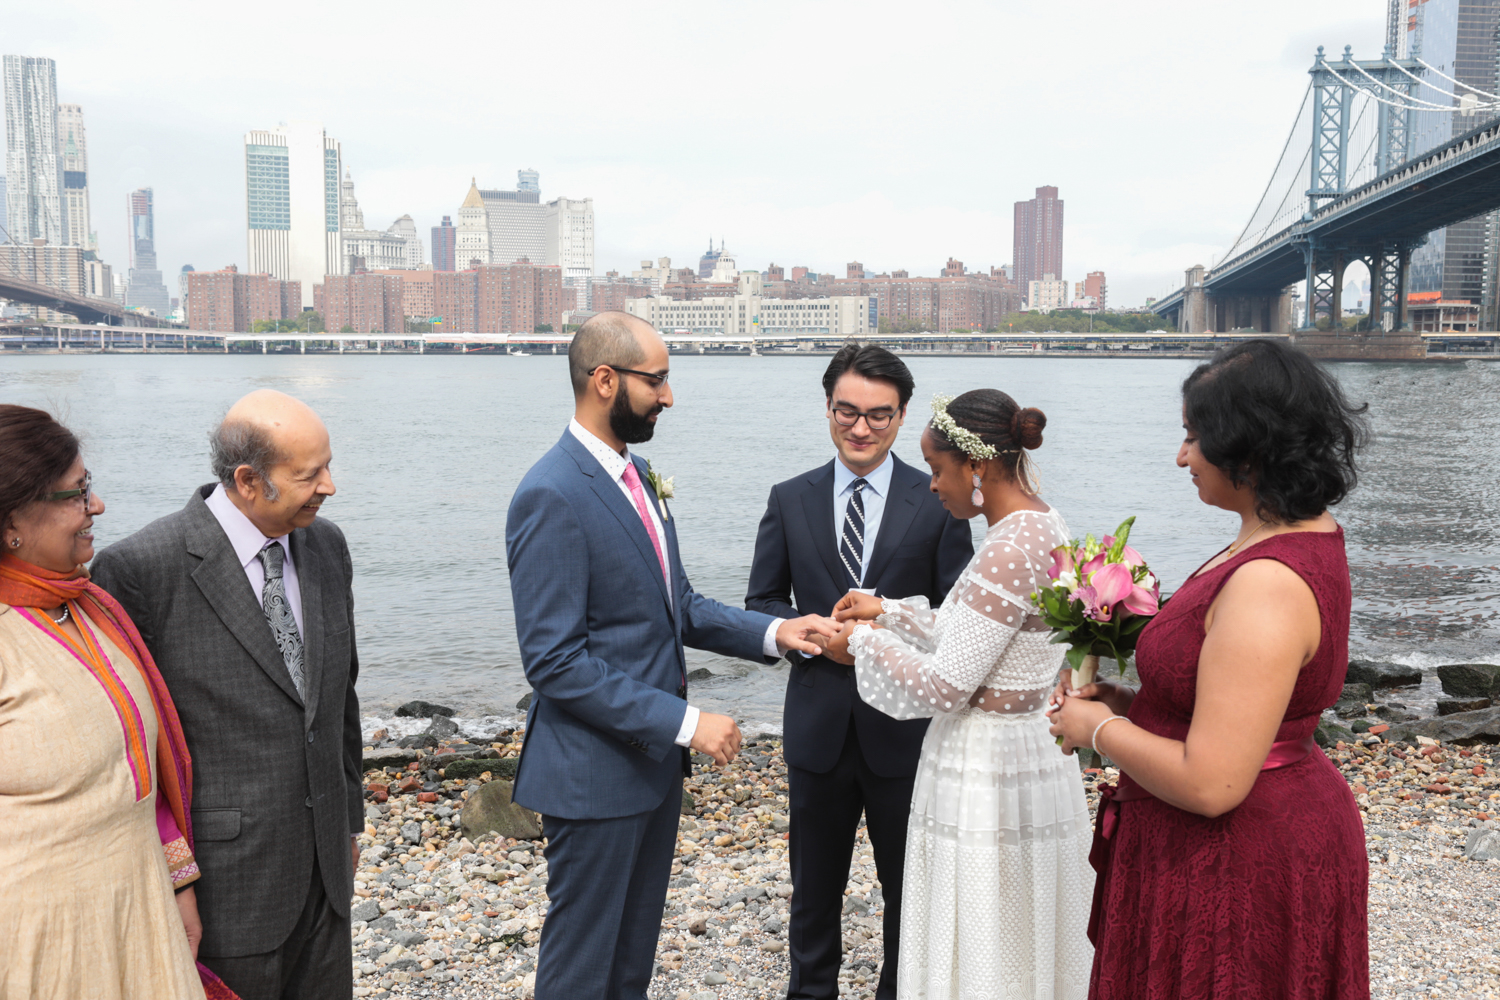 Brooklyn Bridge Park Wedding Ceremony